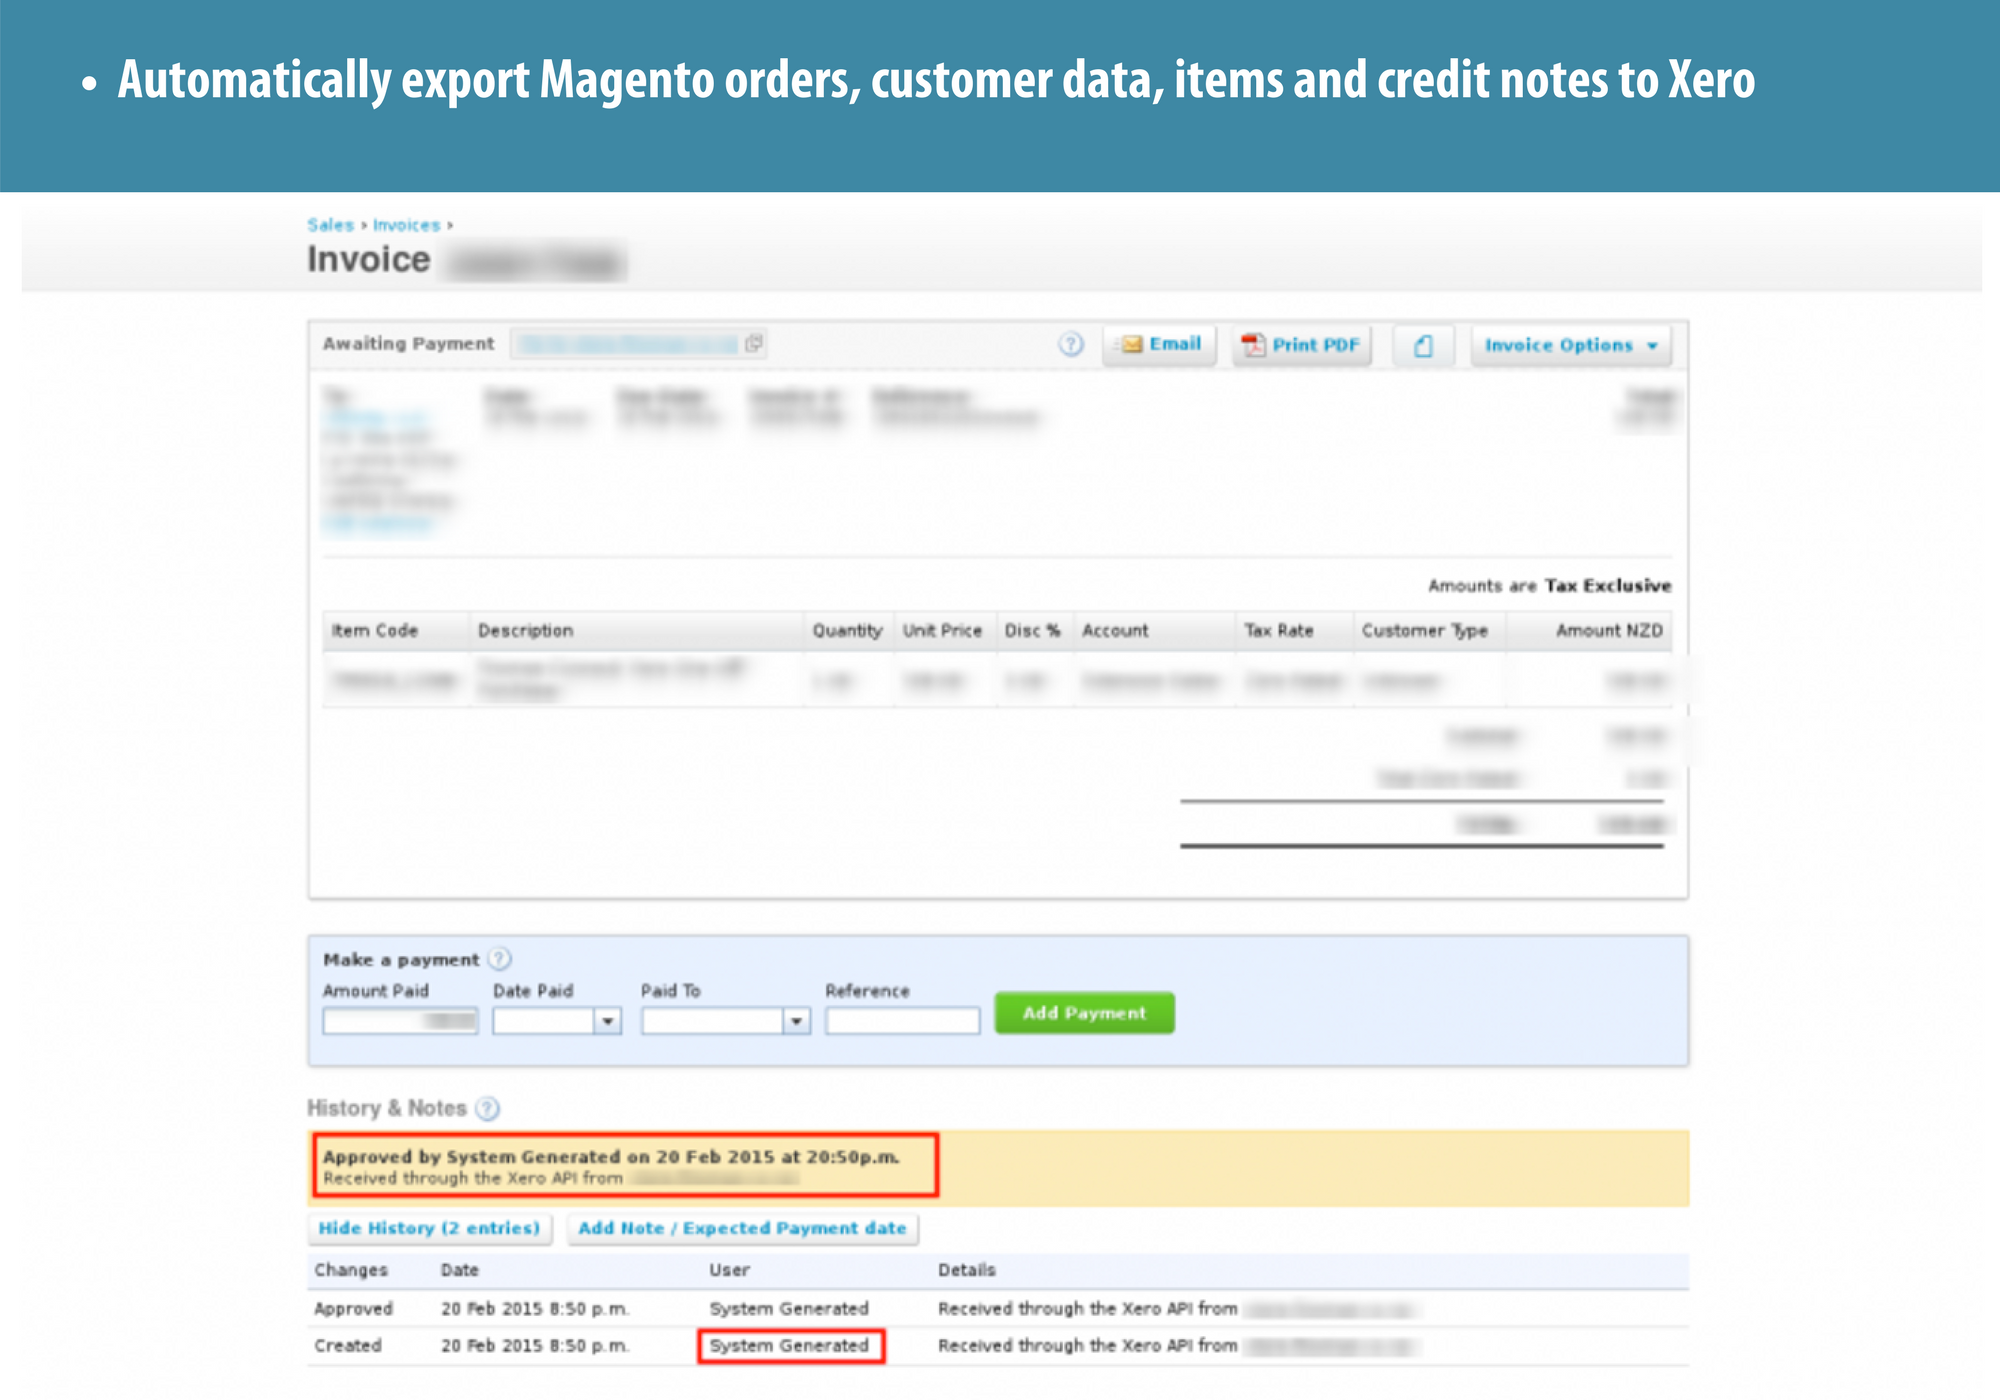 1 Magento Xero Integration Automatic Export